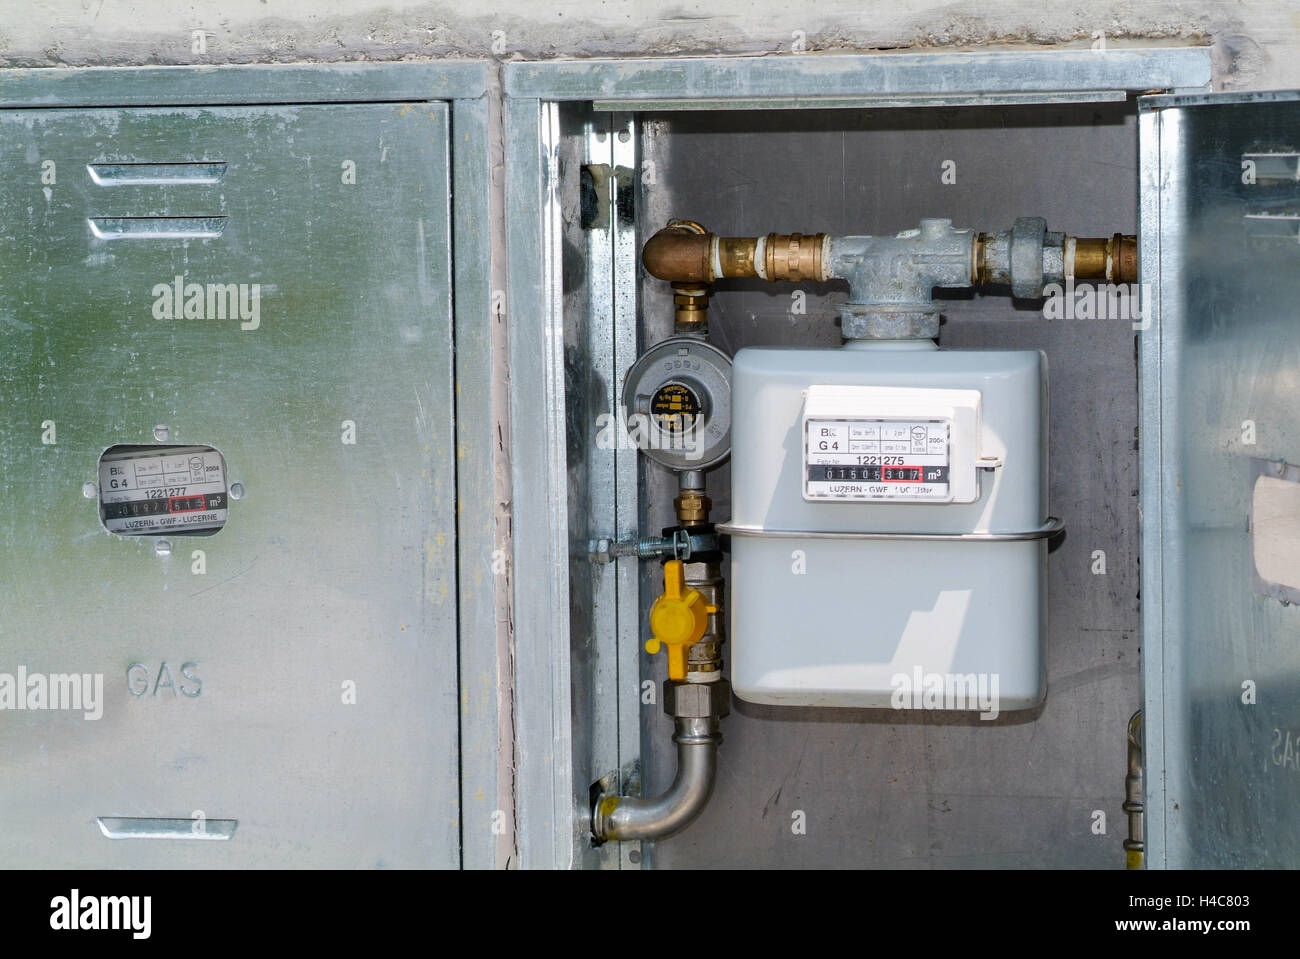 Domestic Gas Meter Stock Photos & Domestic Gas Meter Stock Images ...